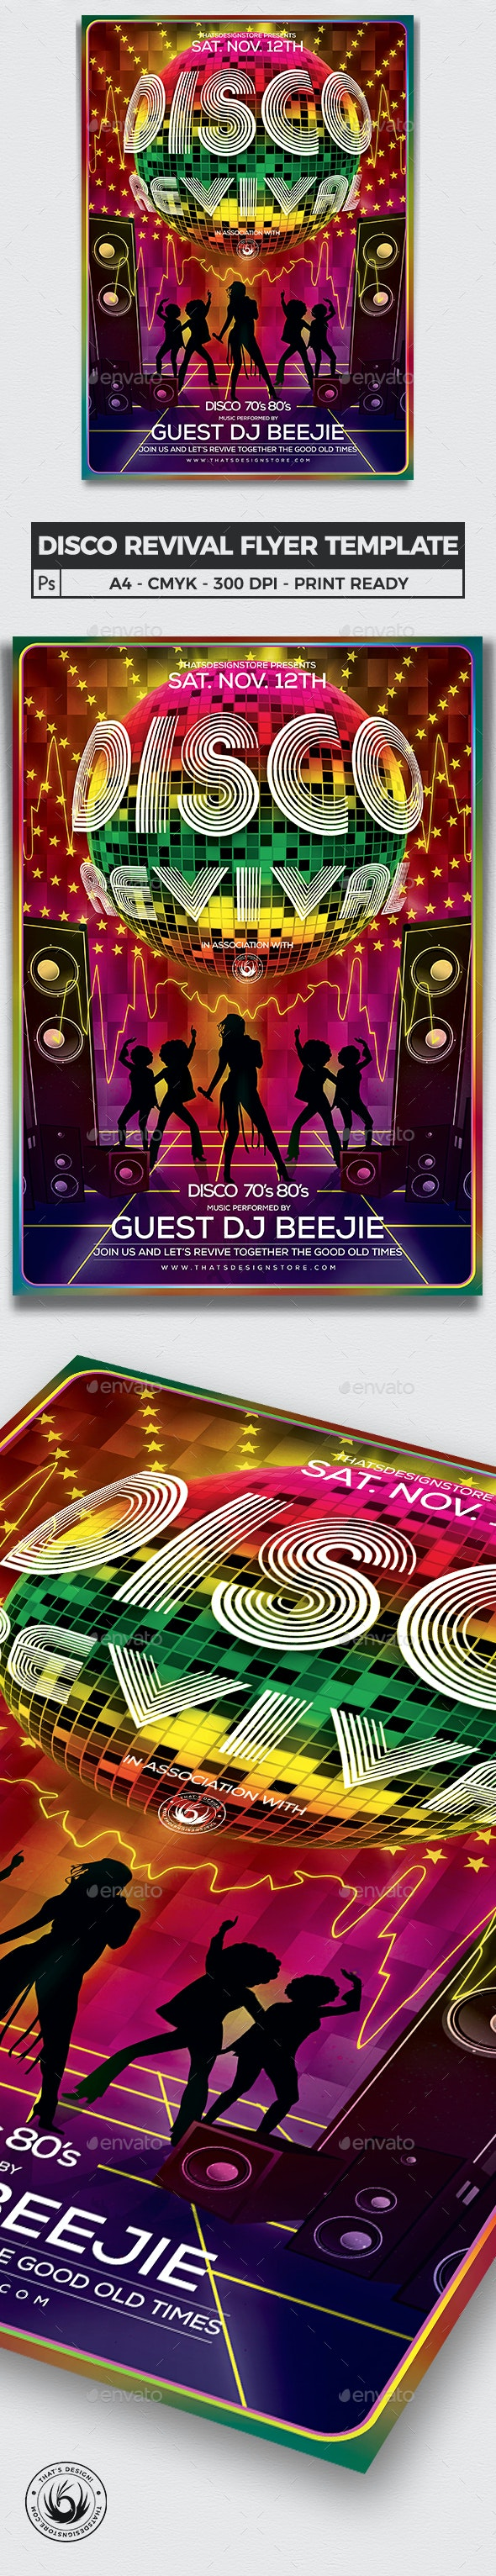 Disco Revival Flyer Template V1 - Clubs & Parties Events